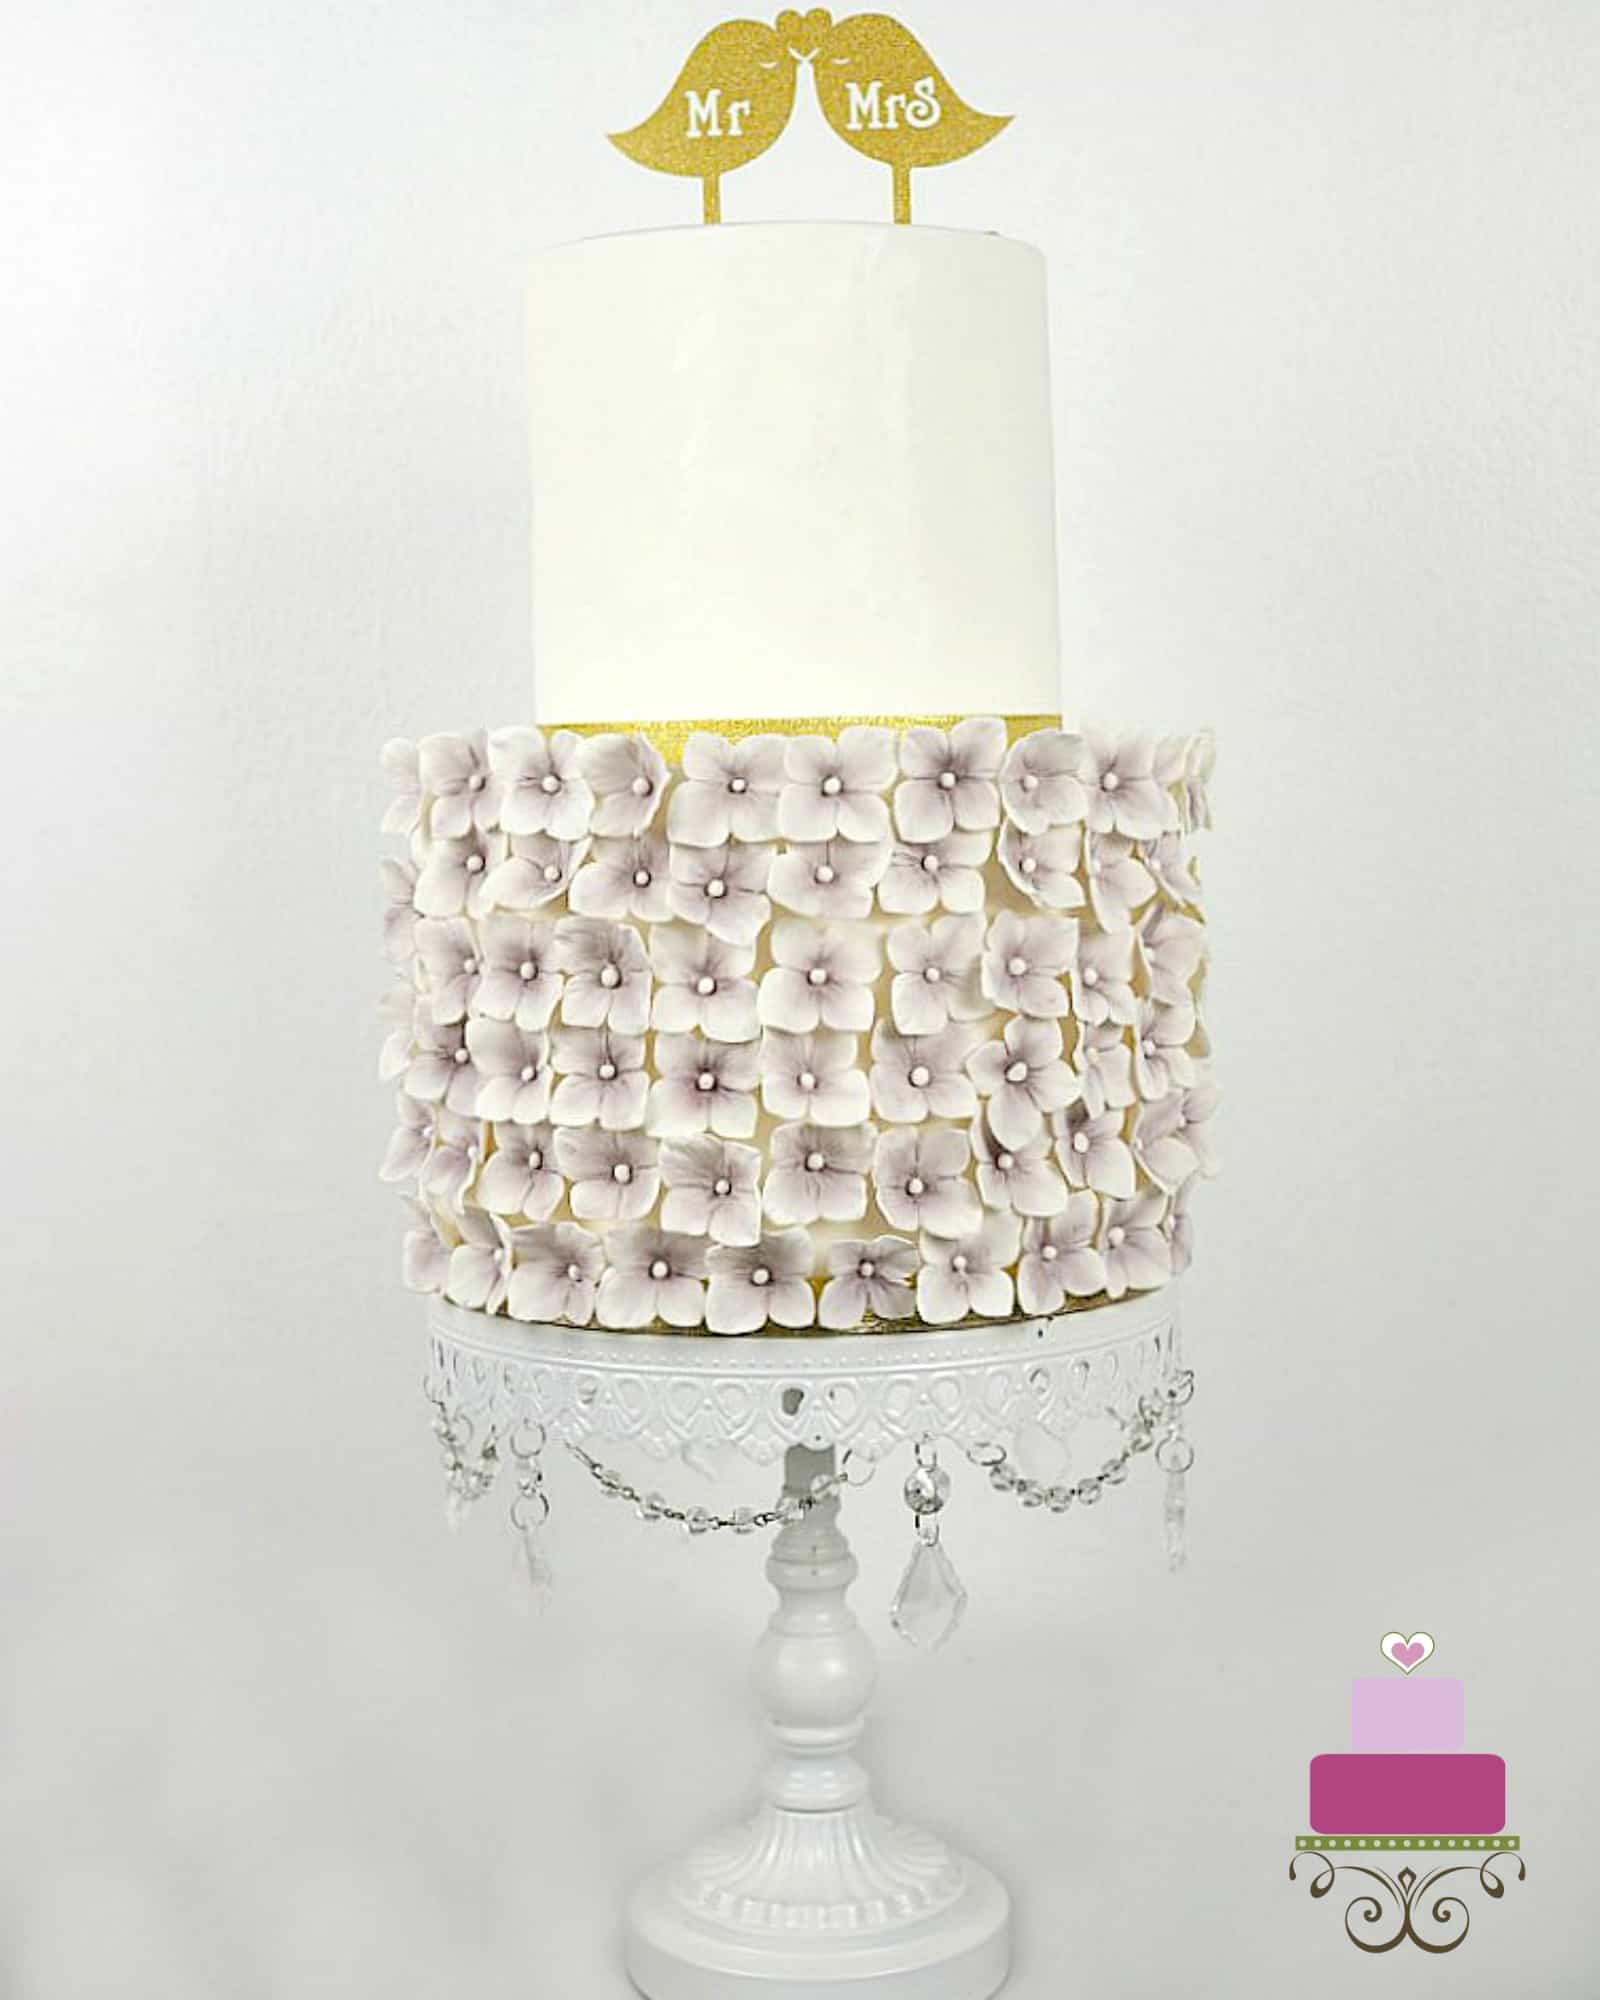 A 2 tier cake with the second tier covered in purple hydrangeas. Cake topper is a gold Mr & Mrs Birds paper pick.